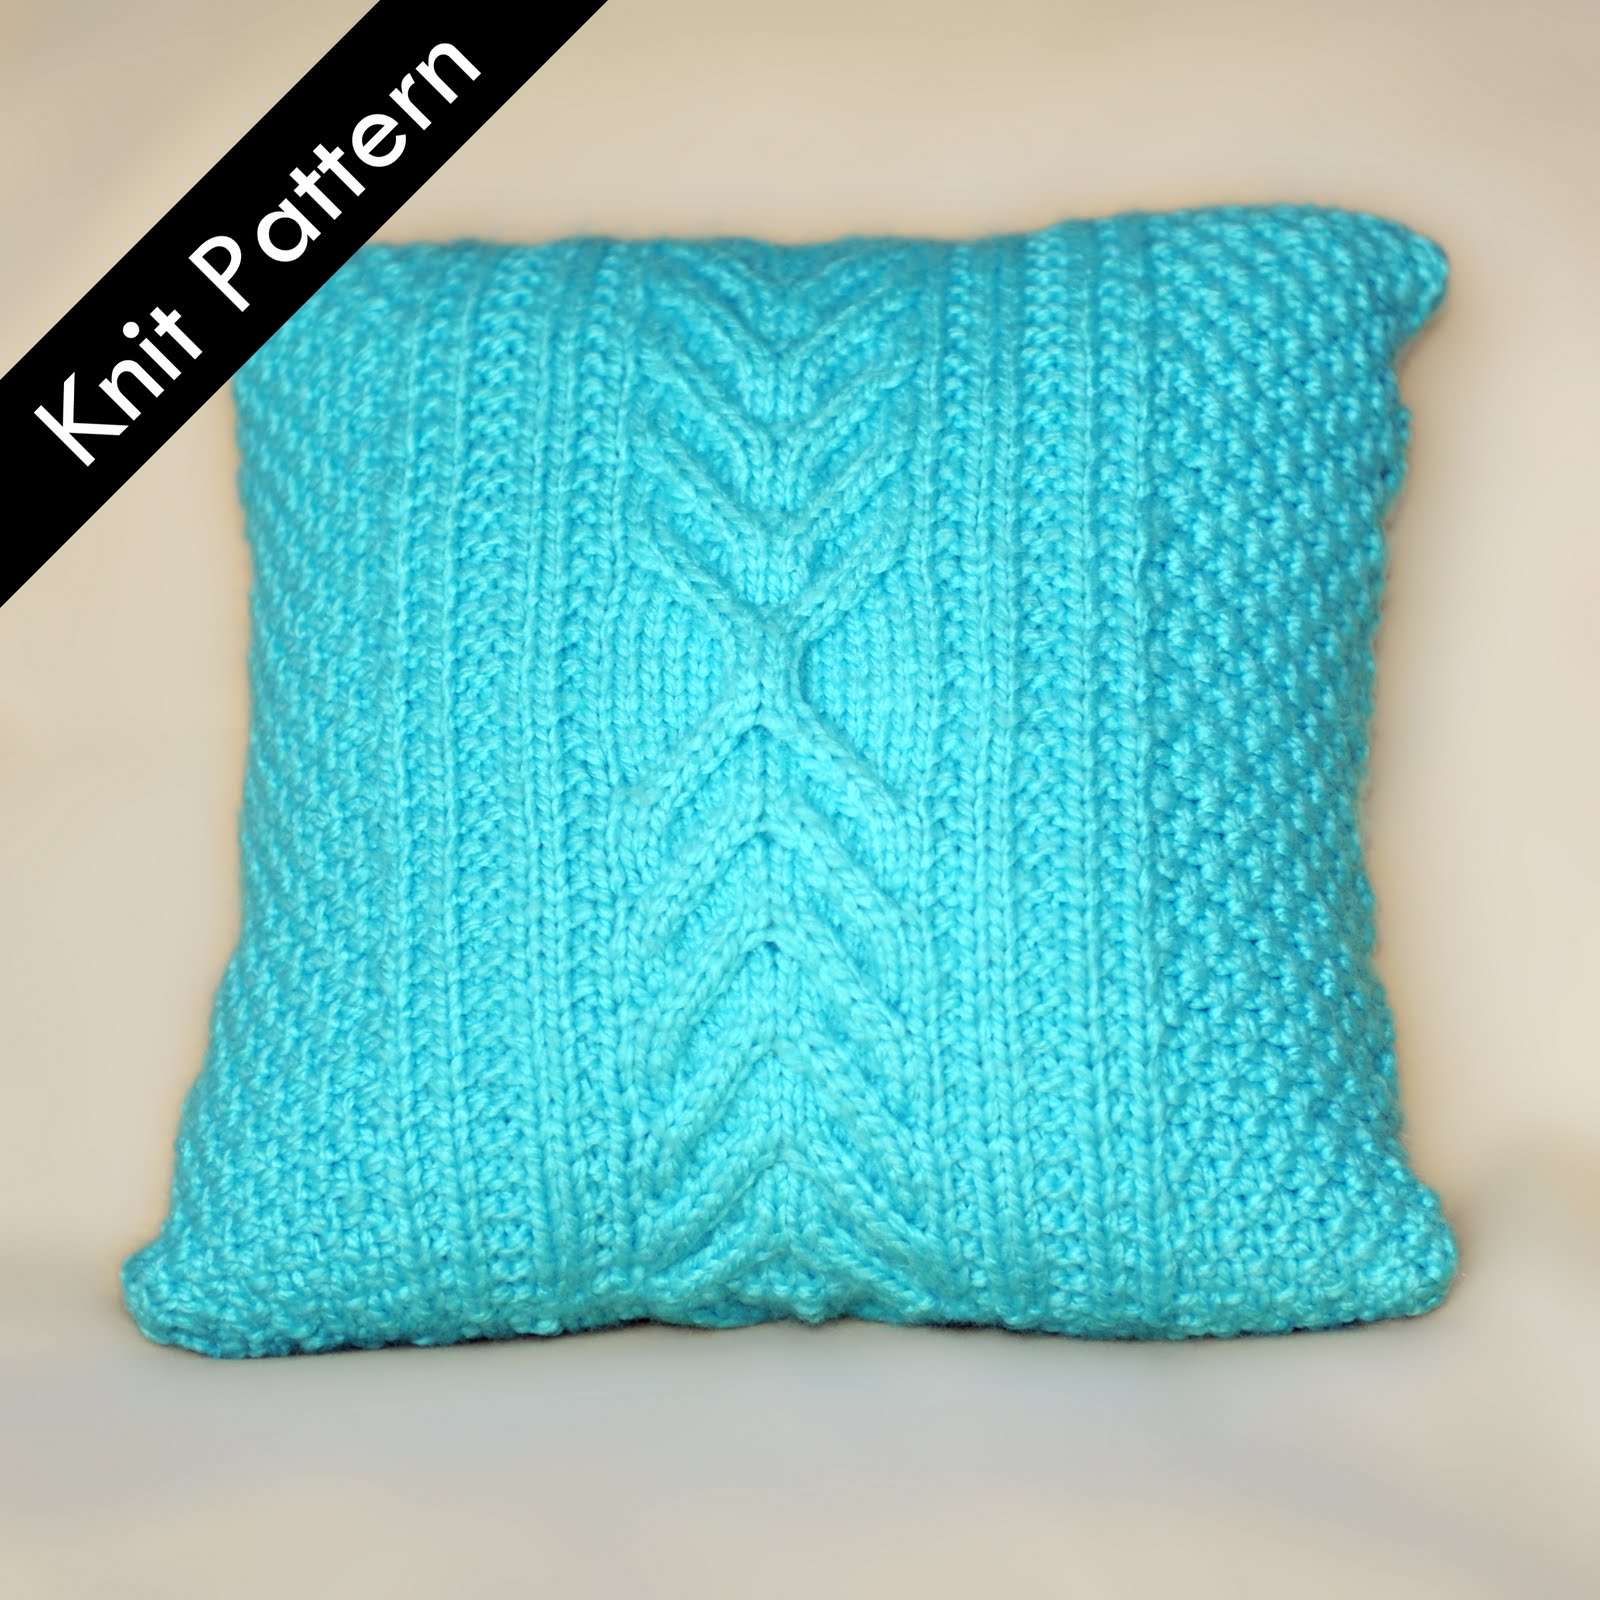 Easy Knitted Pillow - Yahoo! Voices - voices.yahoo.com